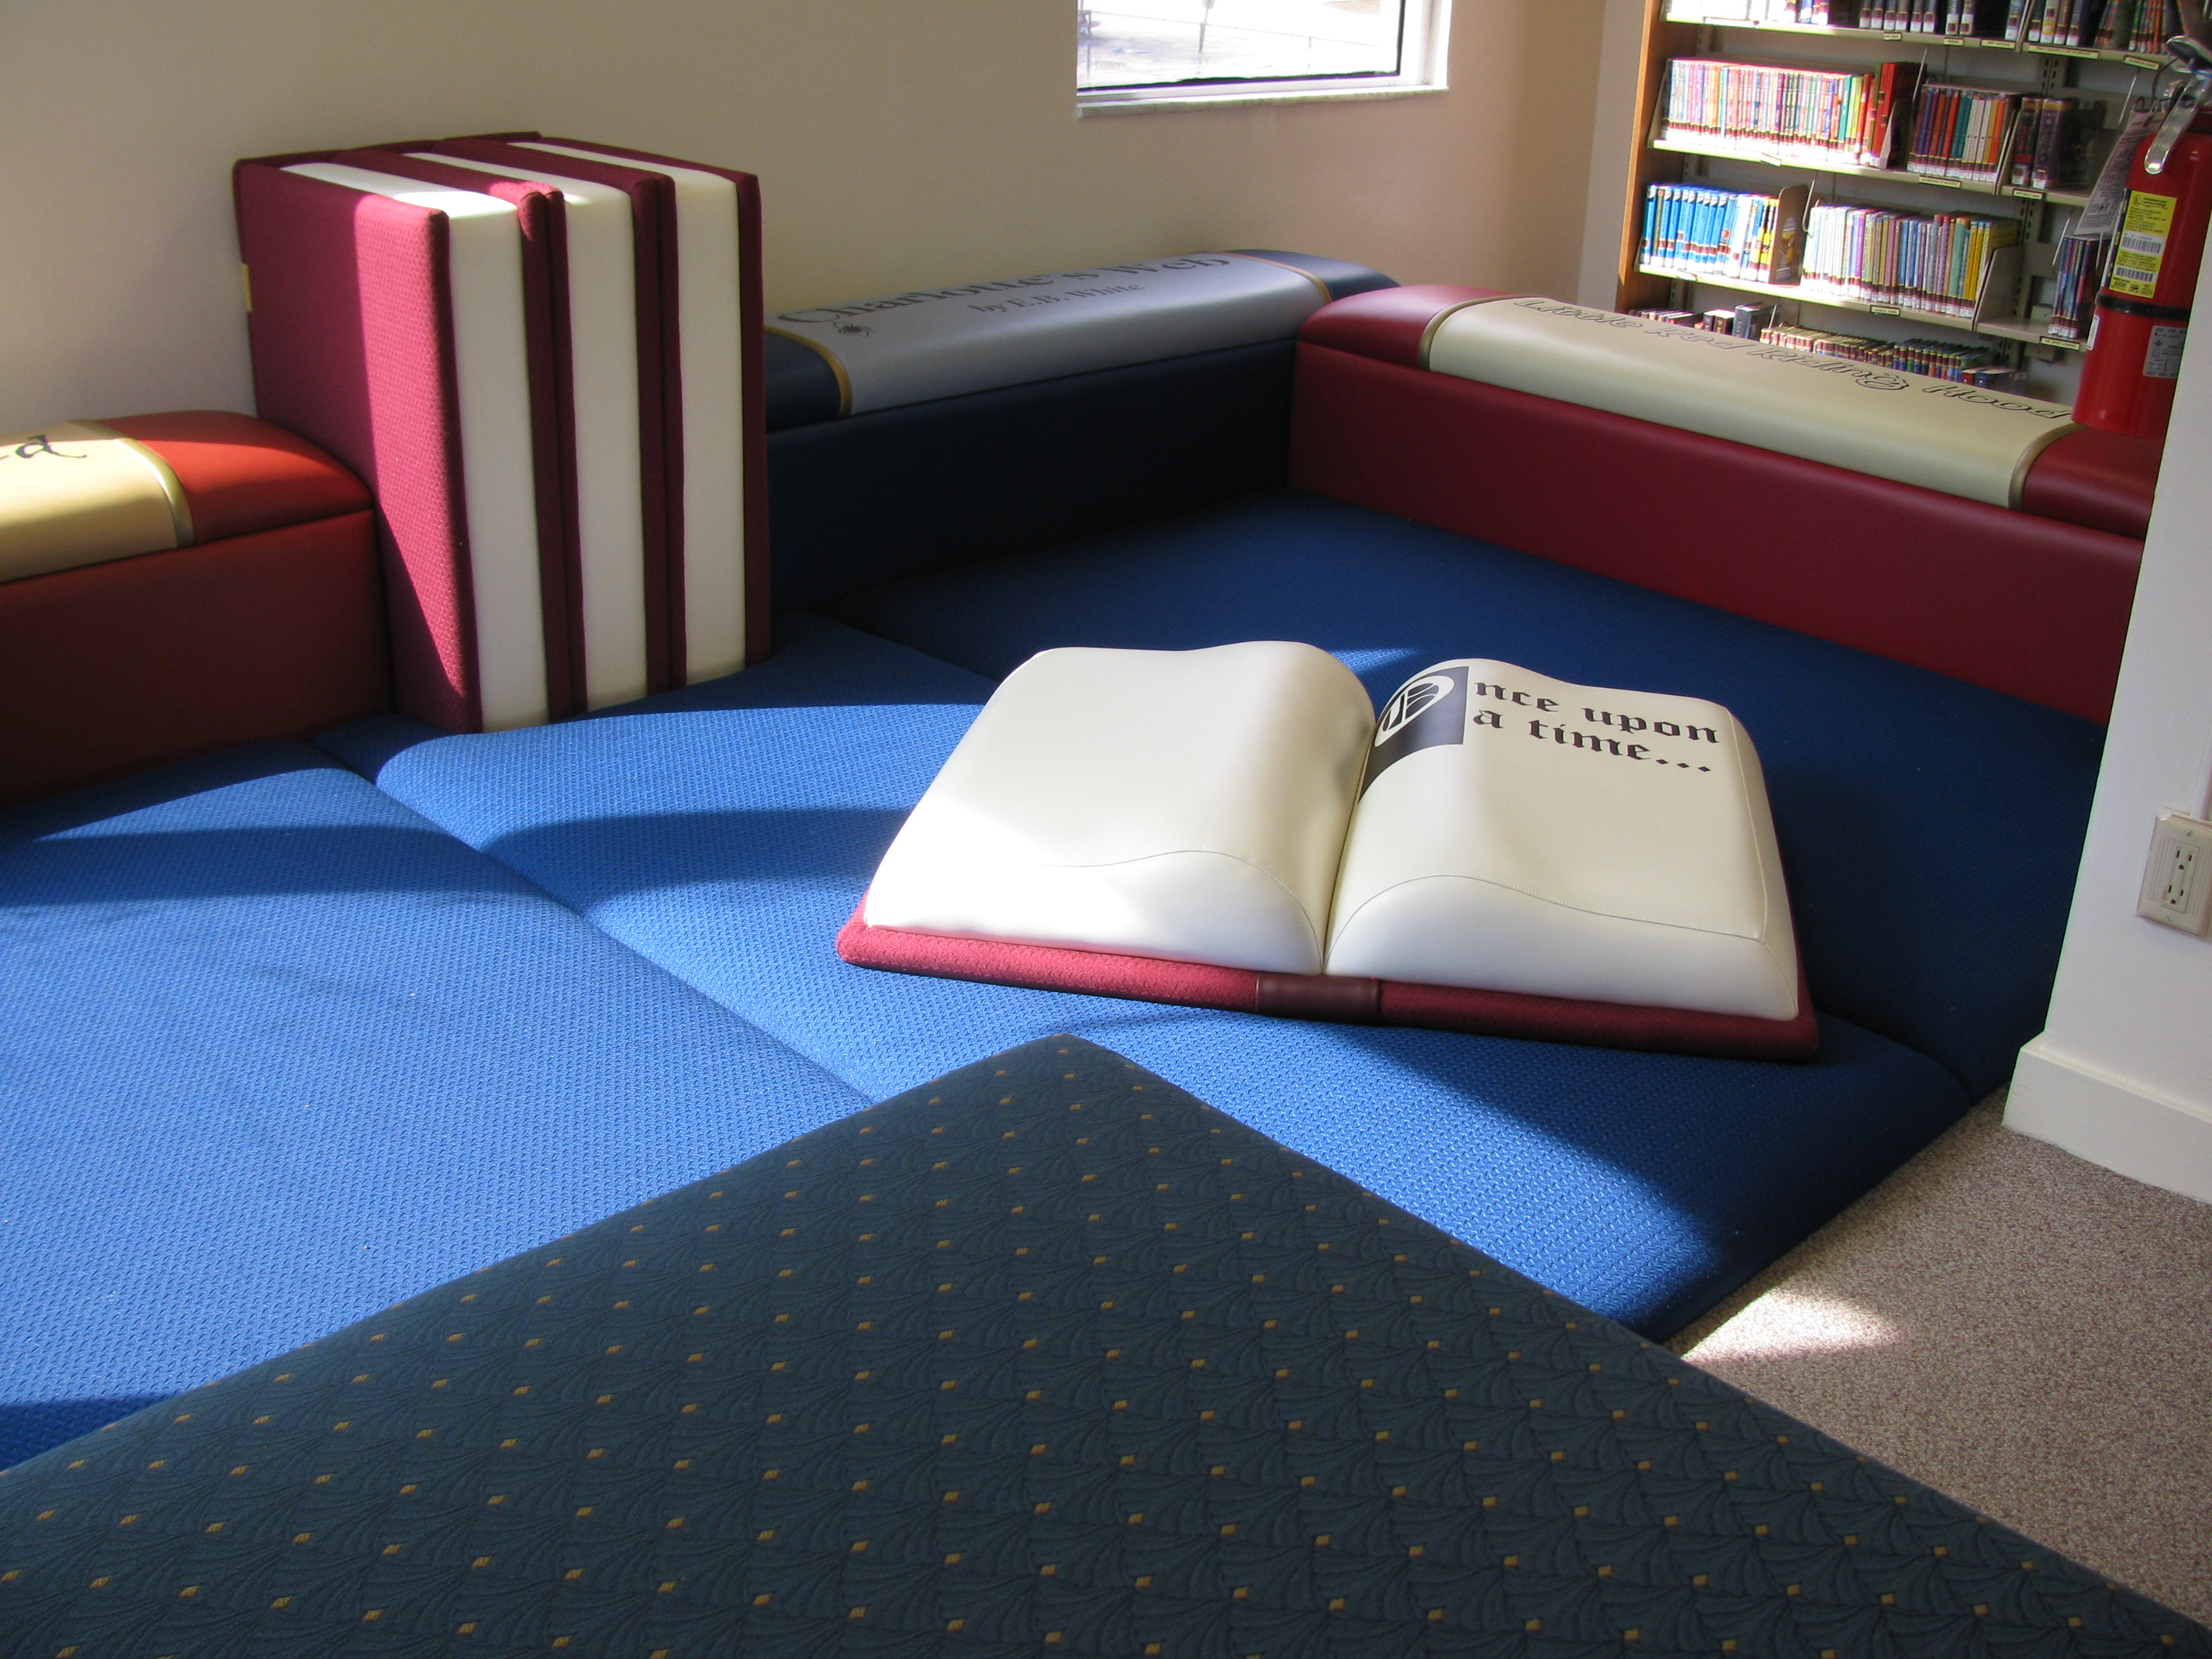 Book-shaped furniture on blue mat